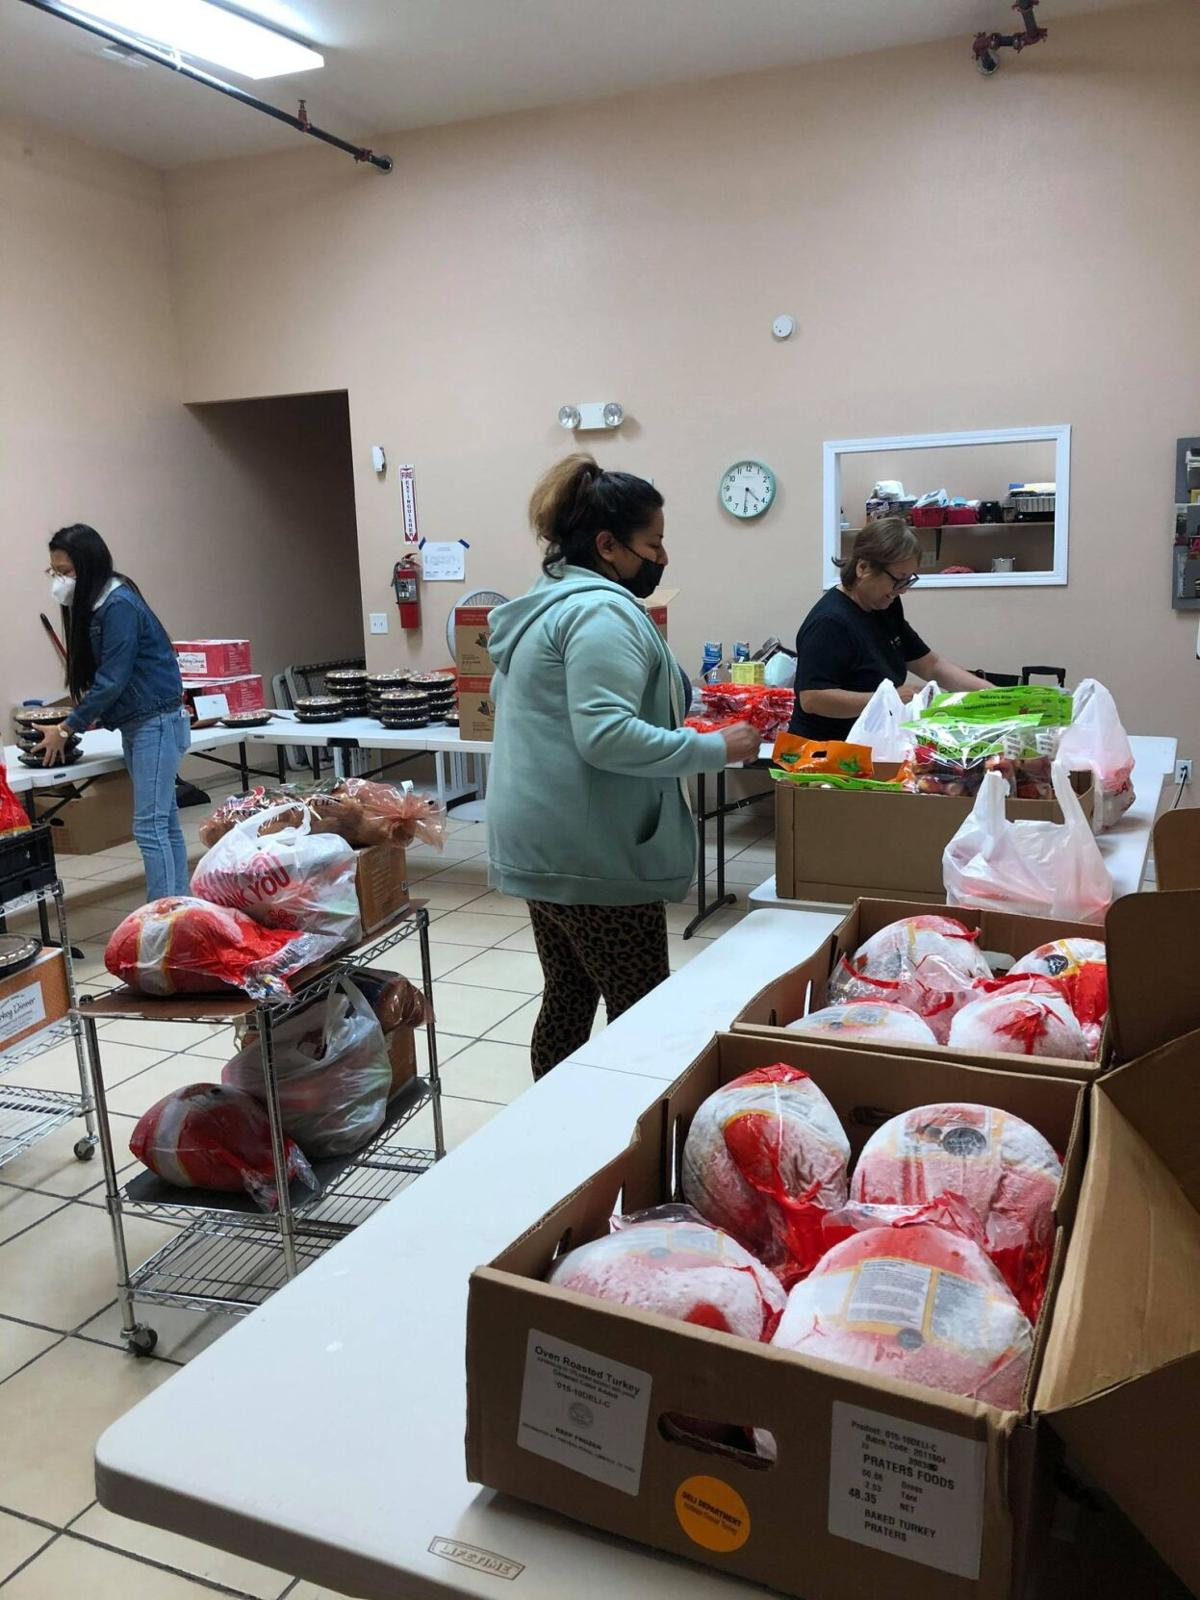 Charity provides Thanksgiving meals to families in need